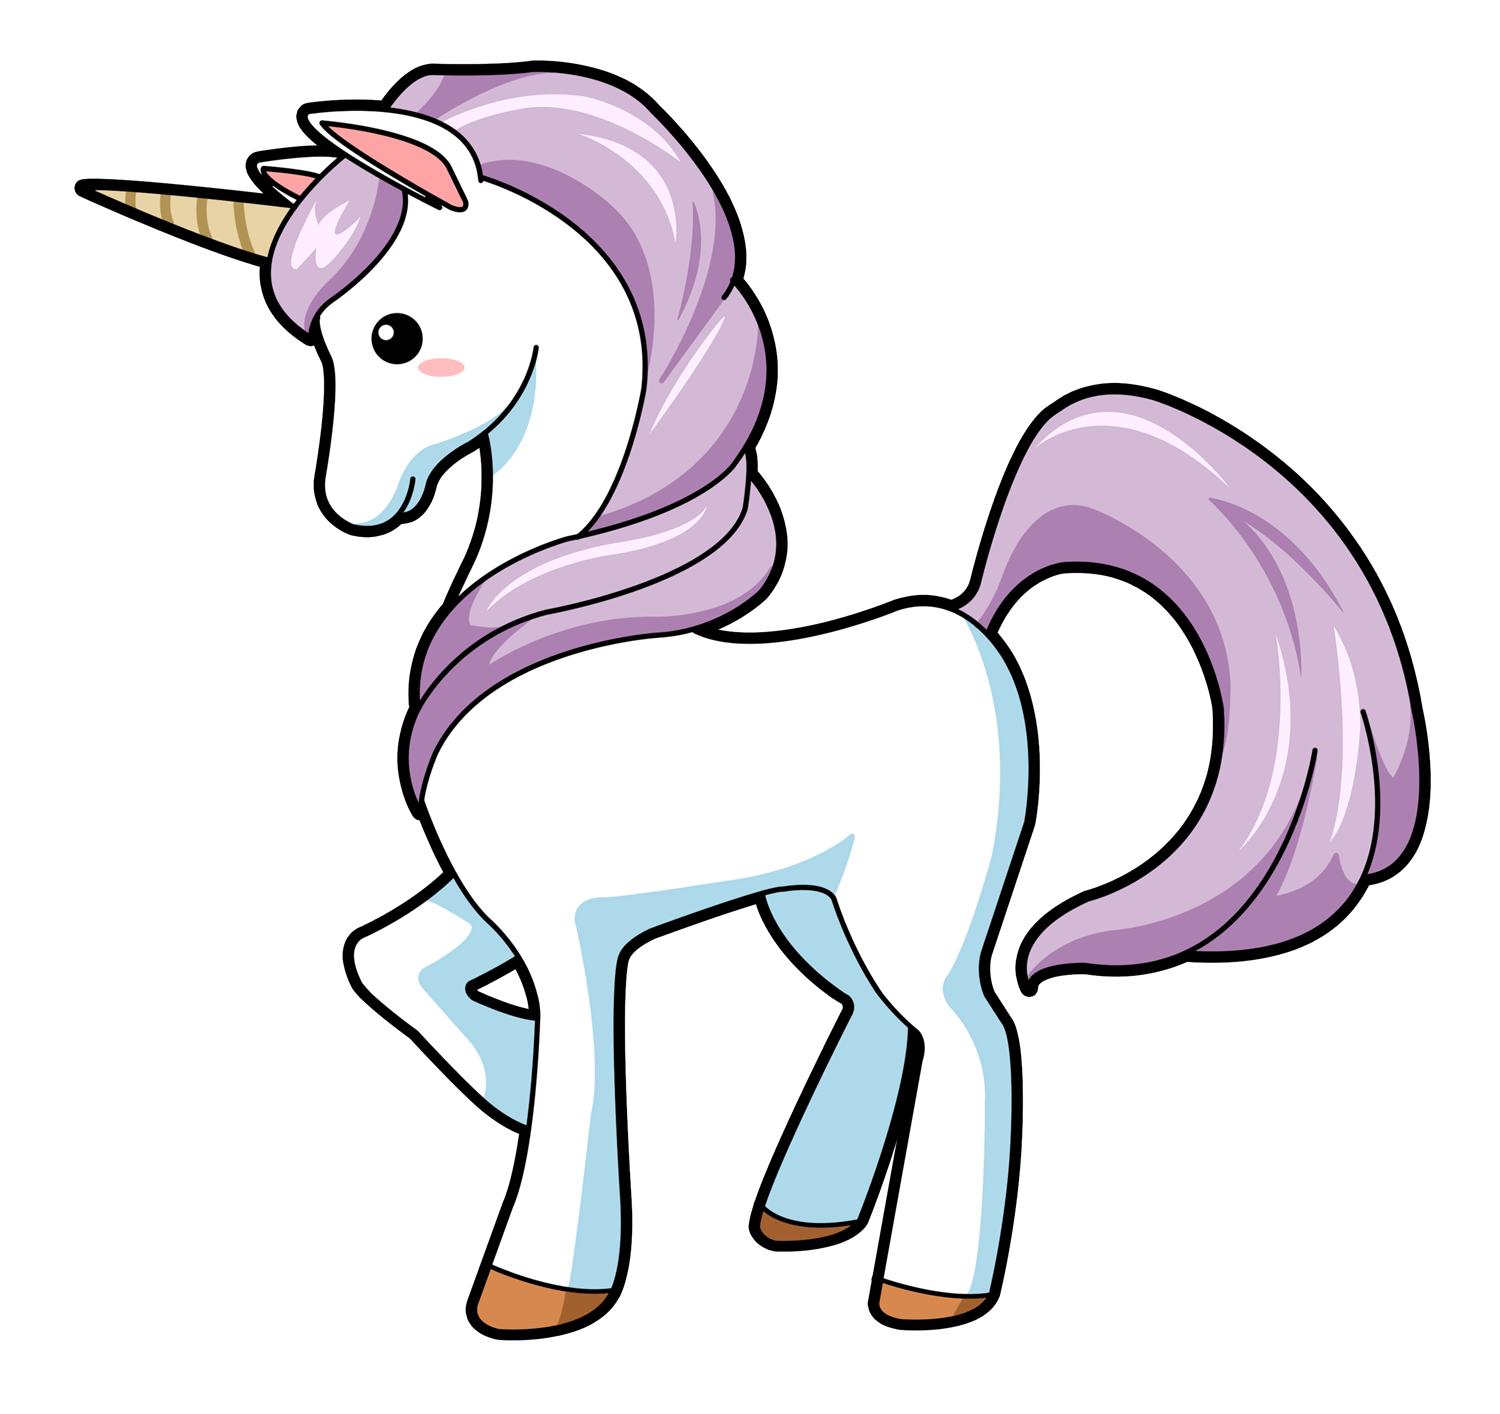 Unicorn clipart You to Fantasy or commercial